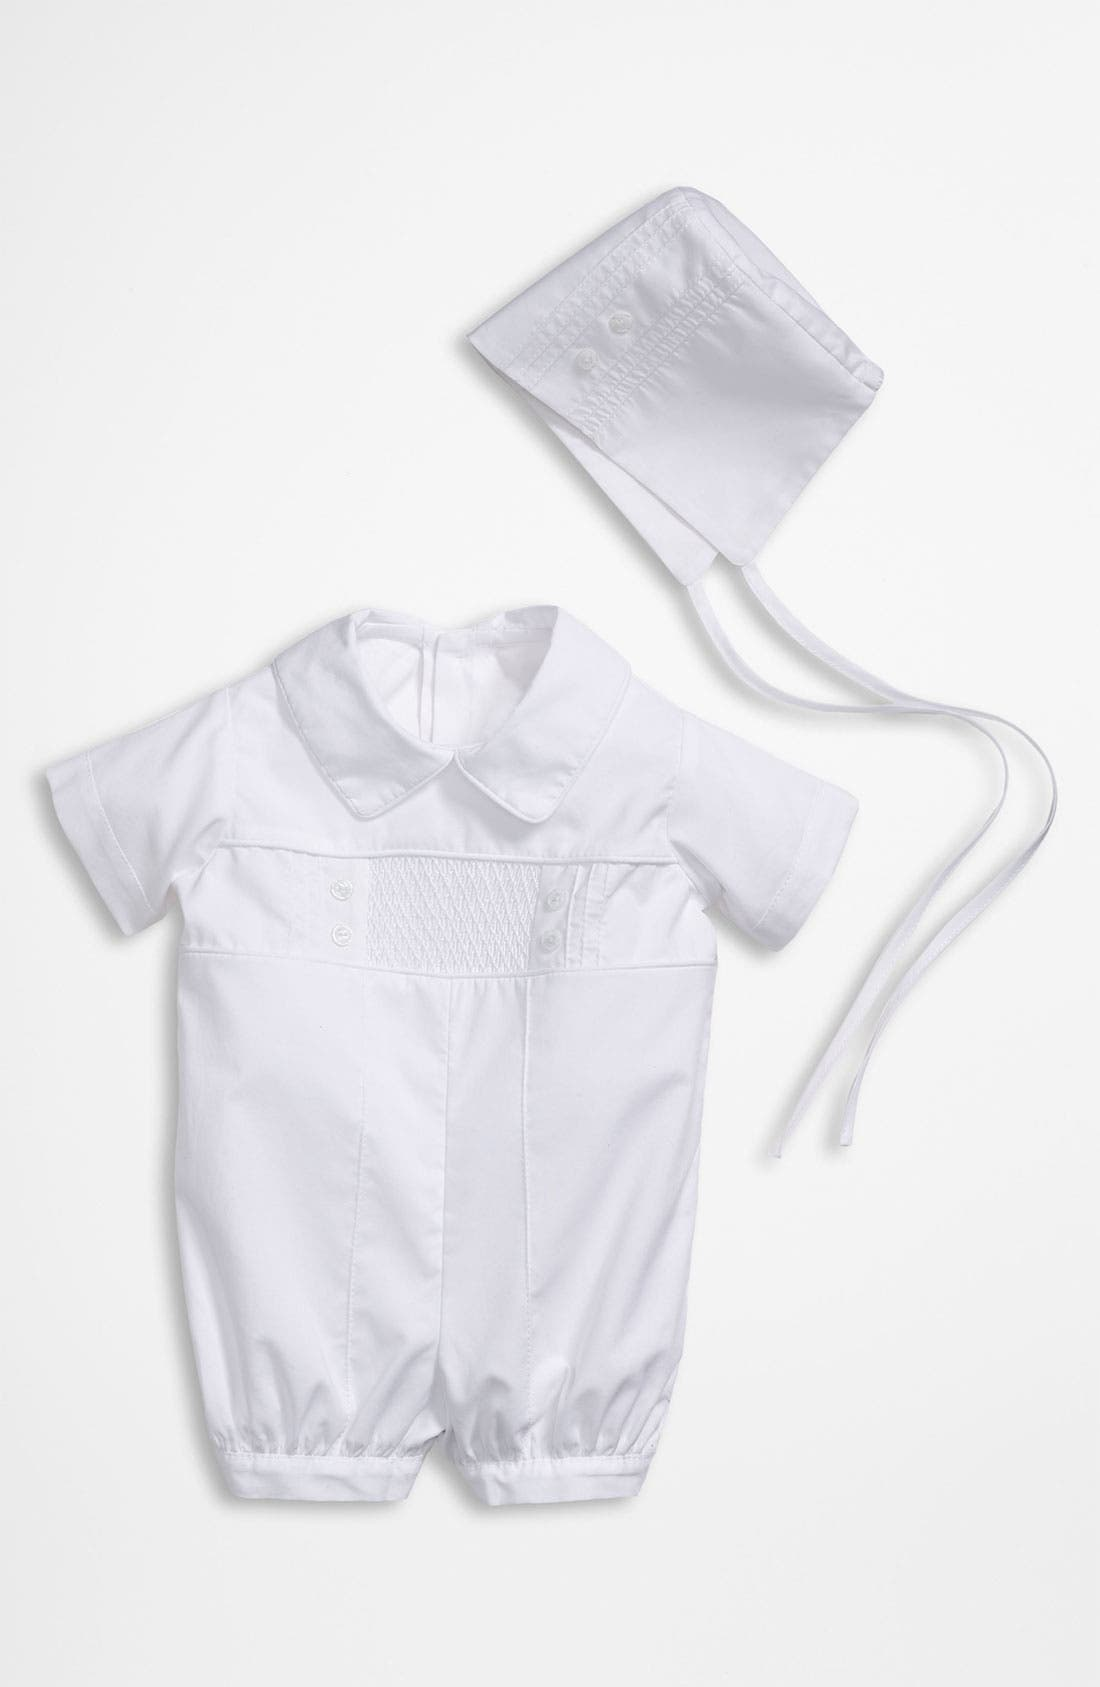 Main Image - Little Things Mean a Lot Romper & Hat Set (Baby)